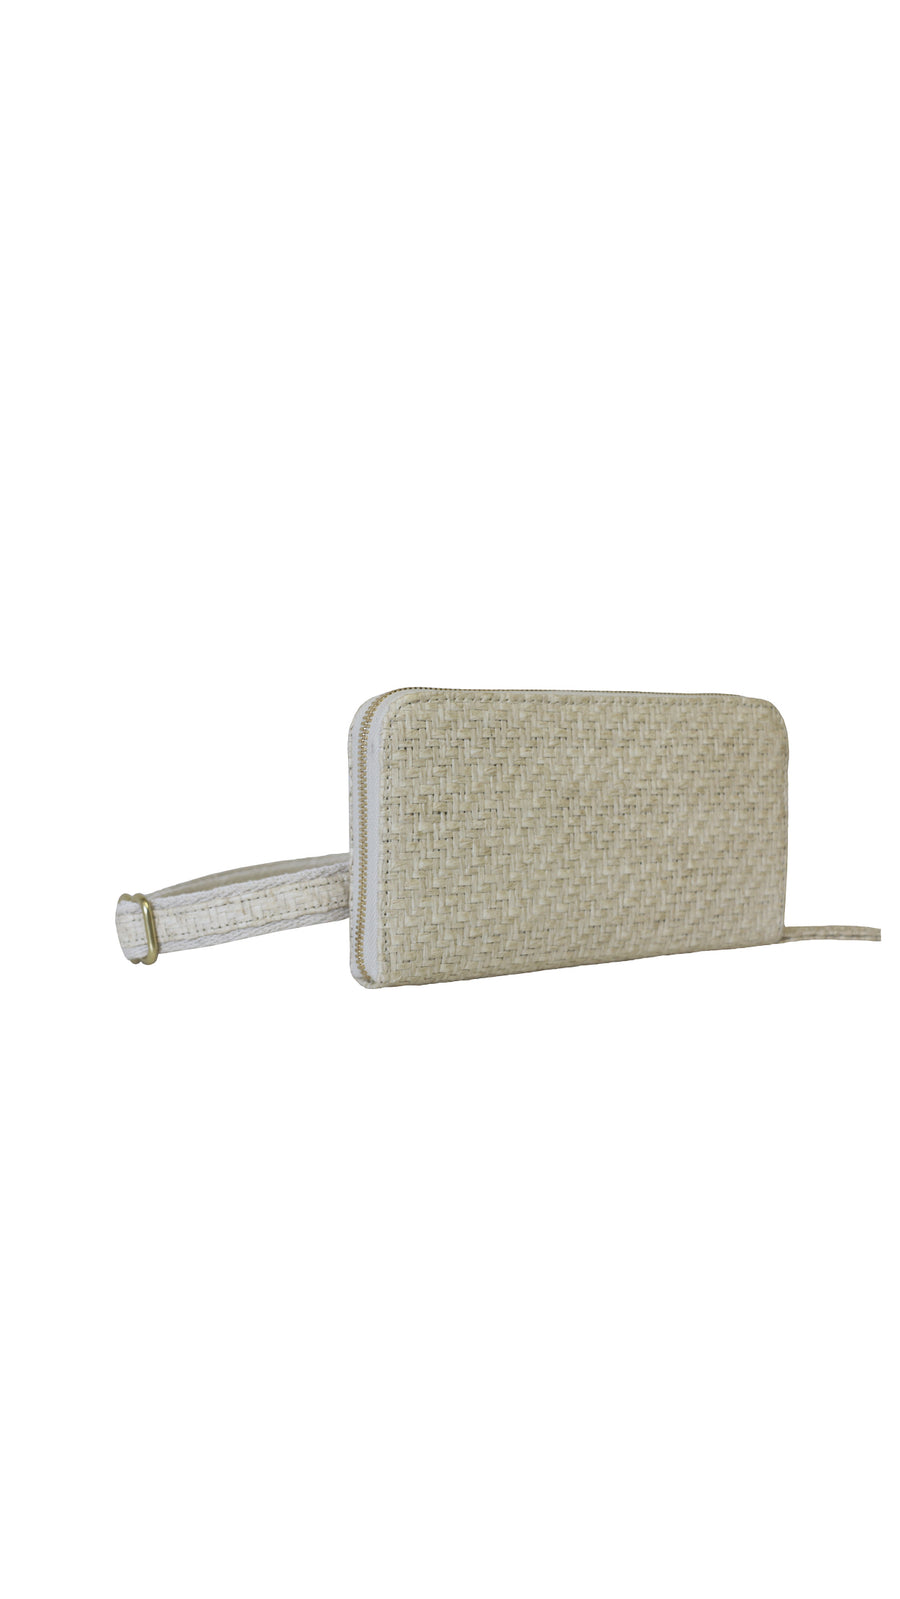 Raffia White Sand Convertible Wallet by HFS Collective